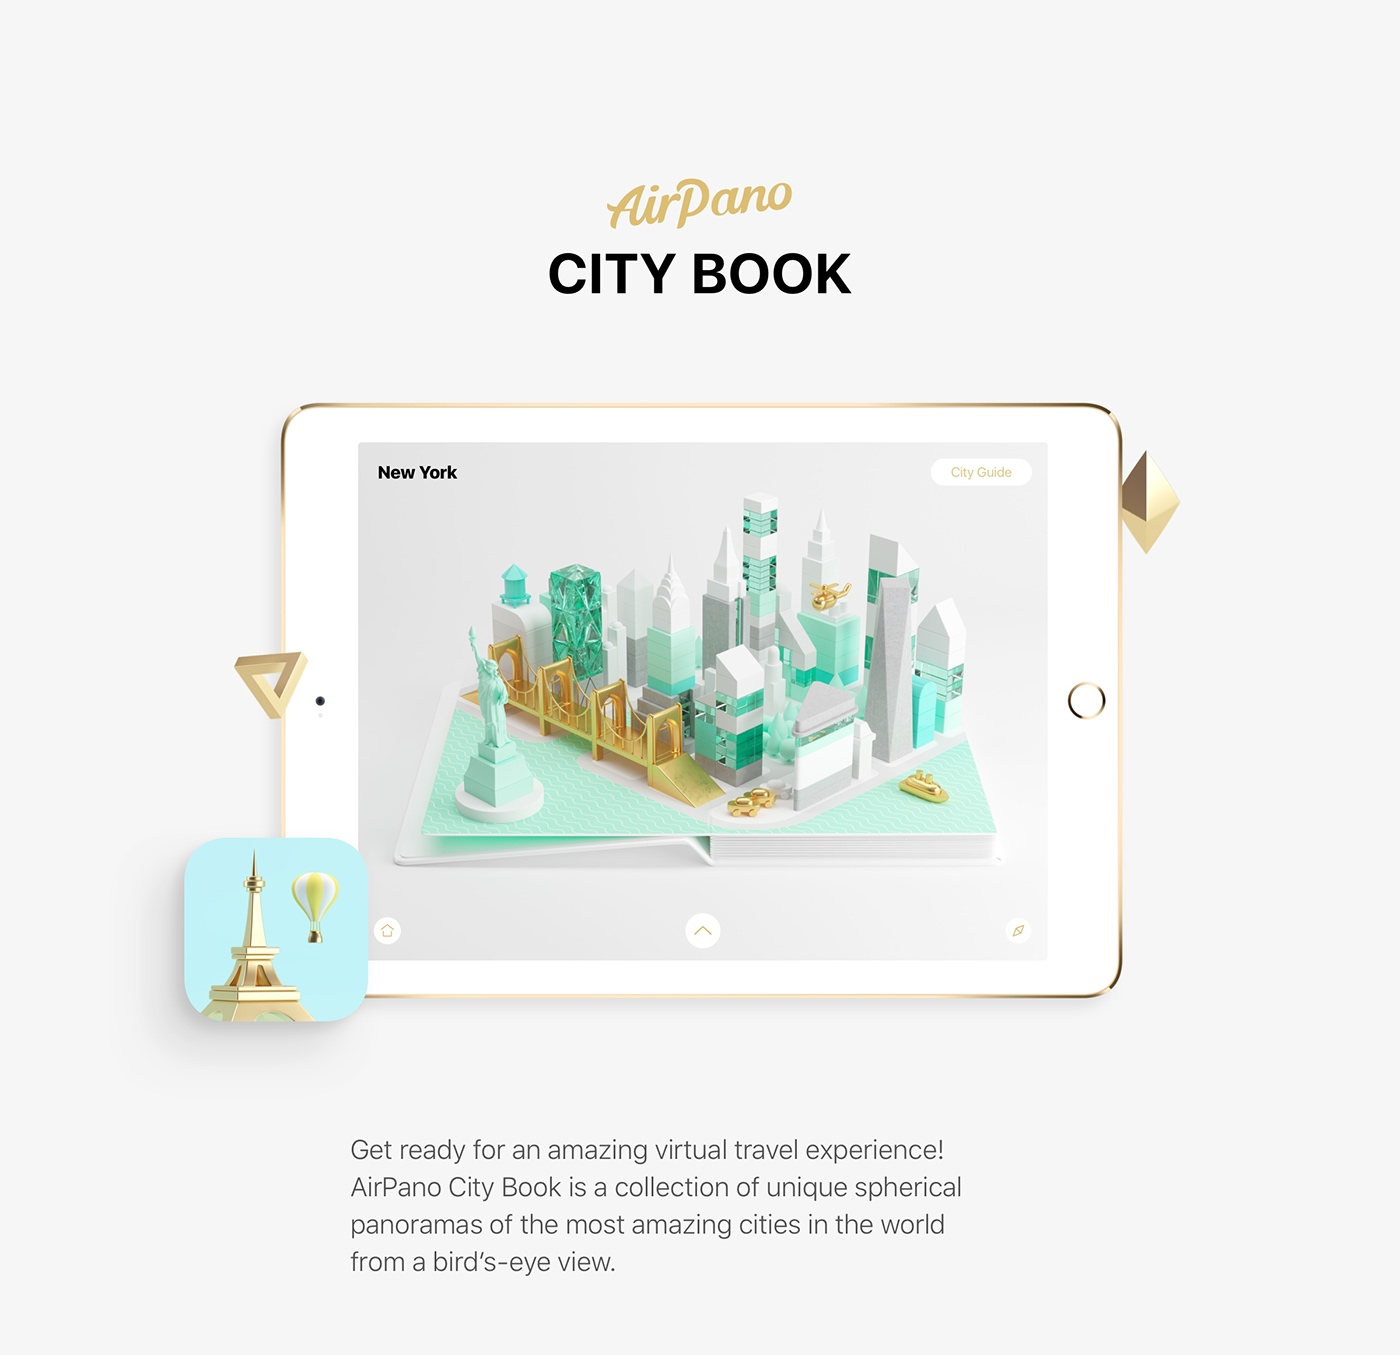 AirPano City Book on